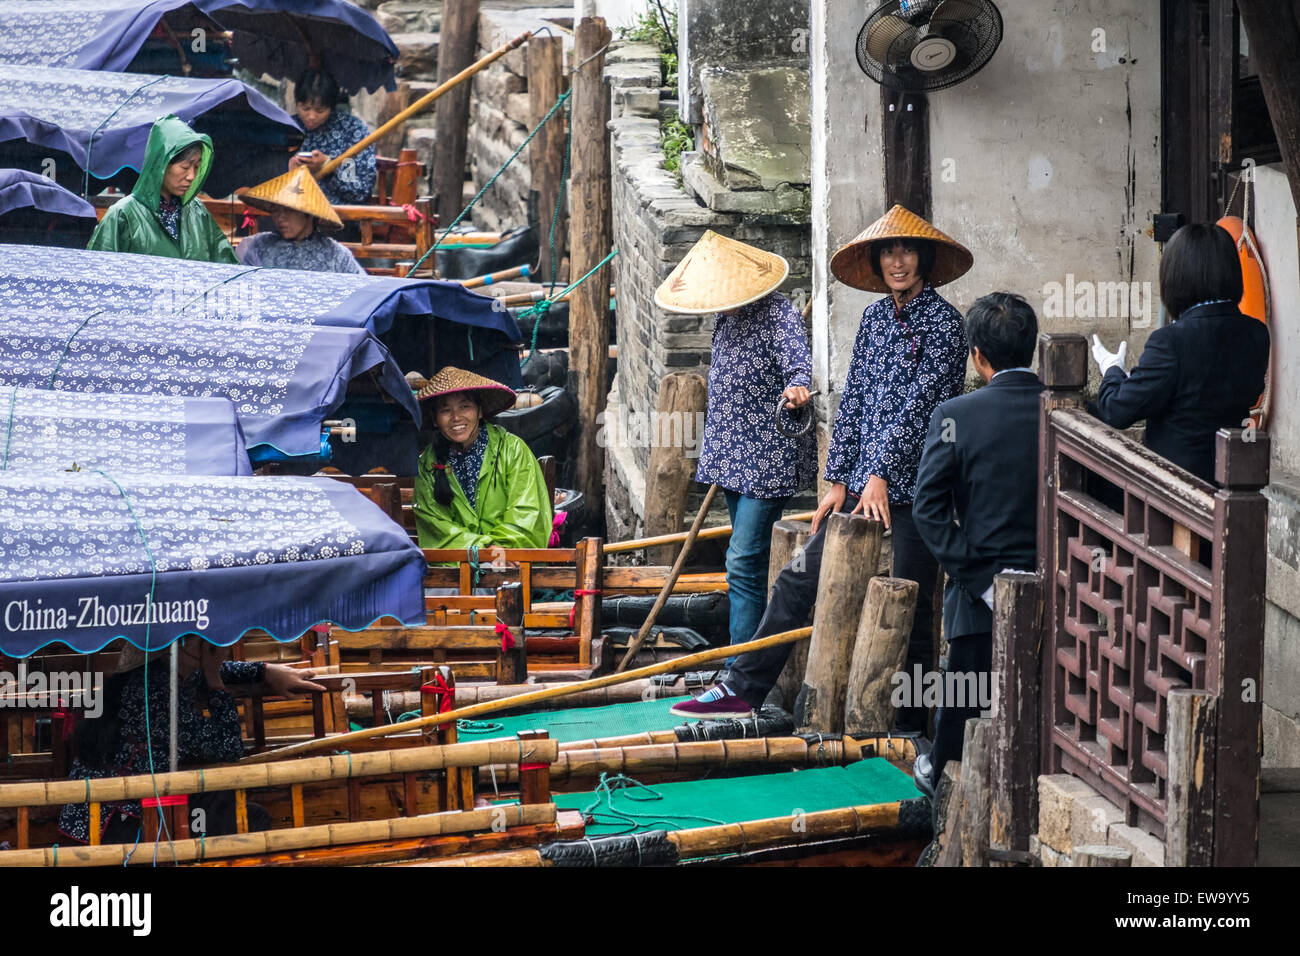 Boaters in raincoats on crowded dock - Stock Image